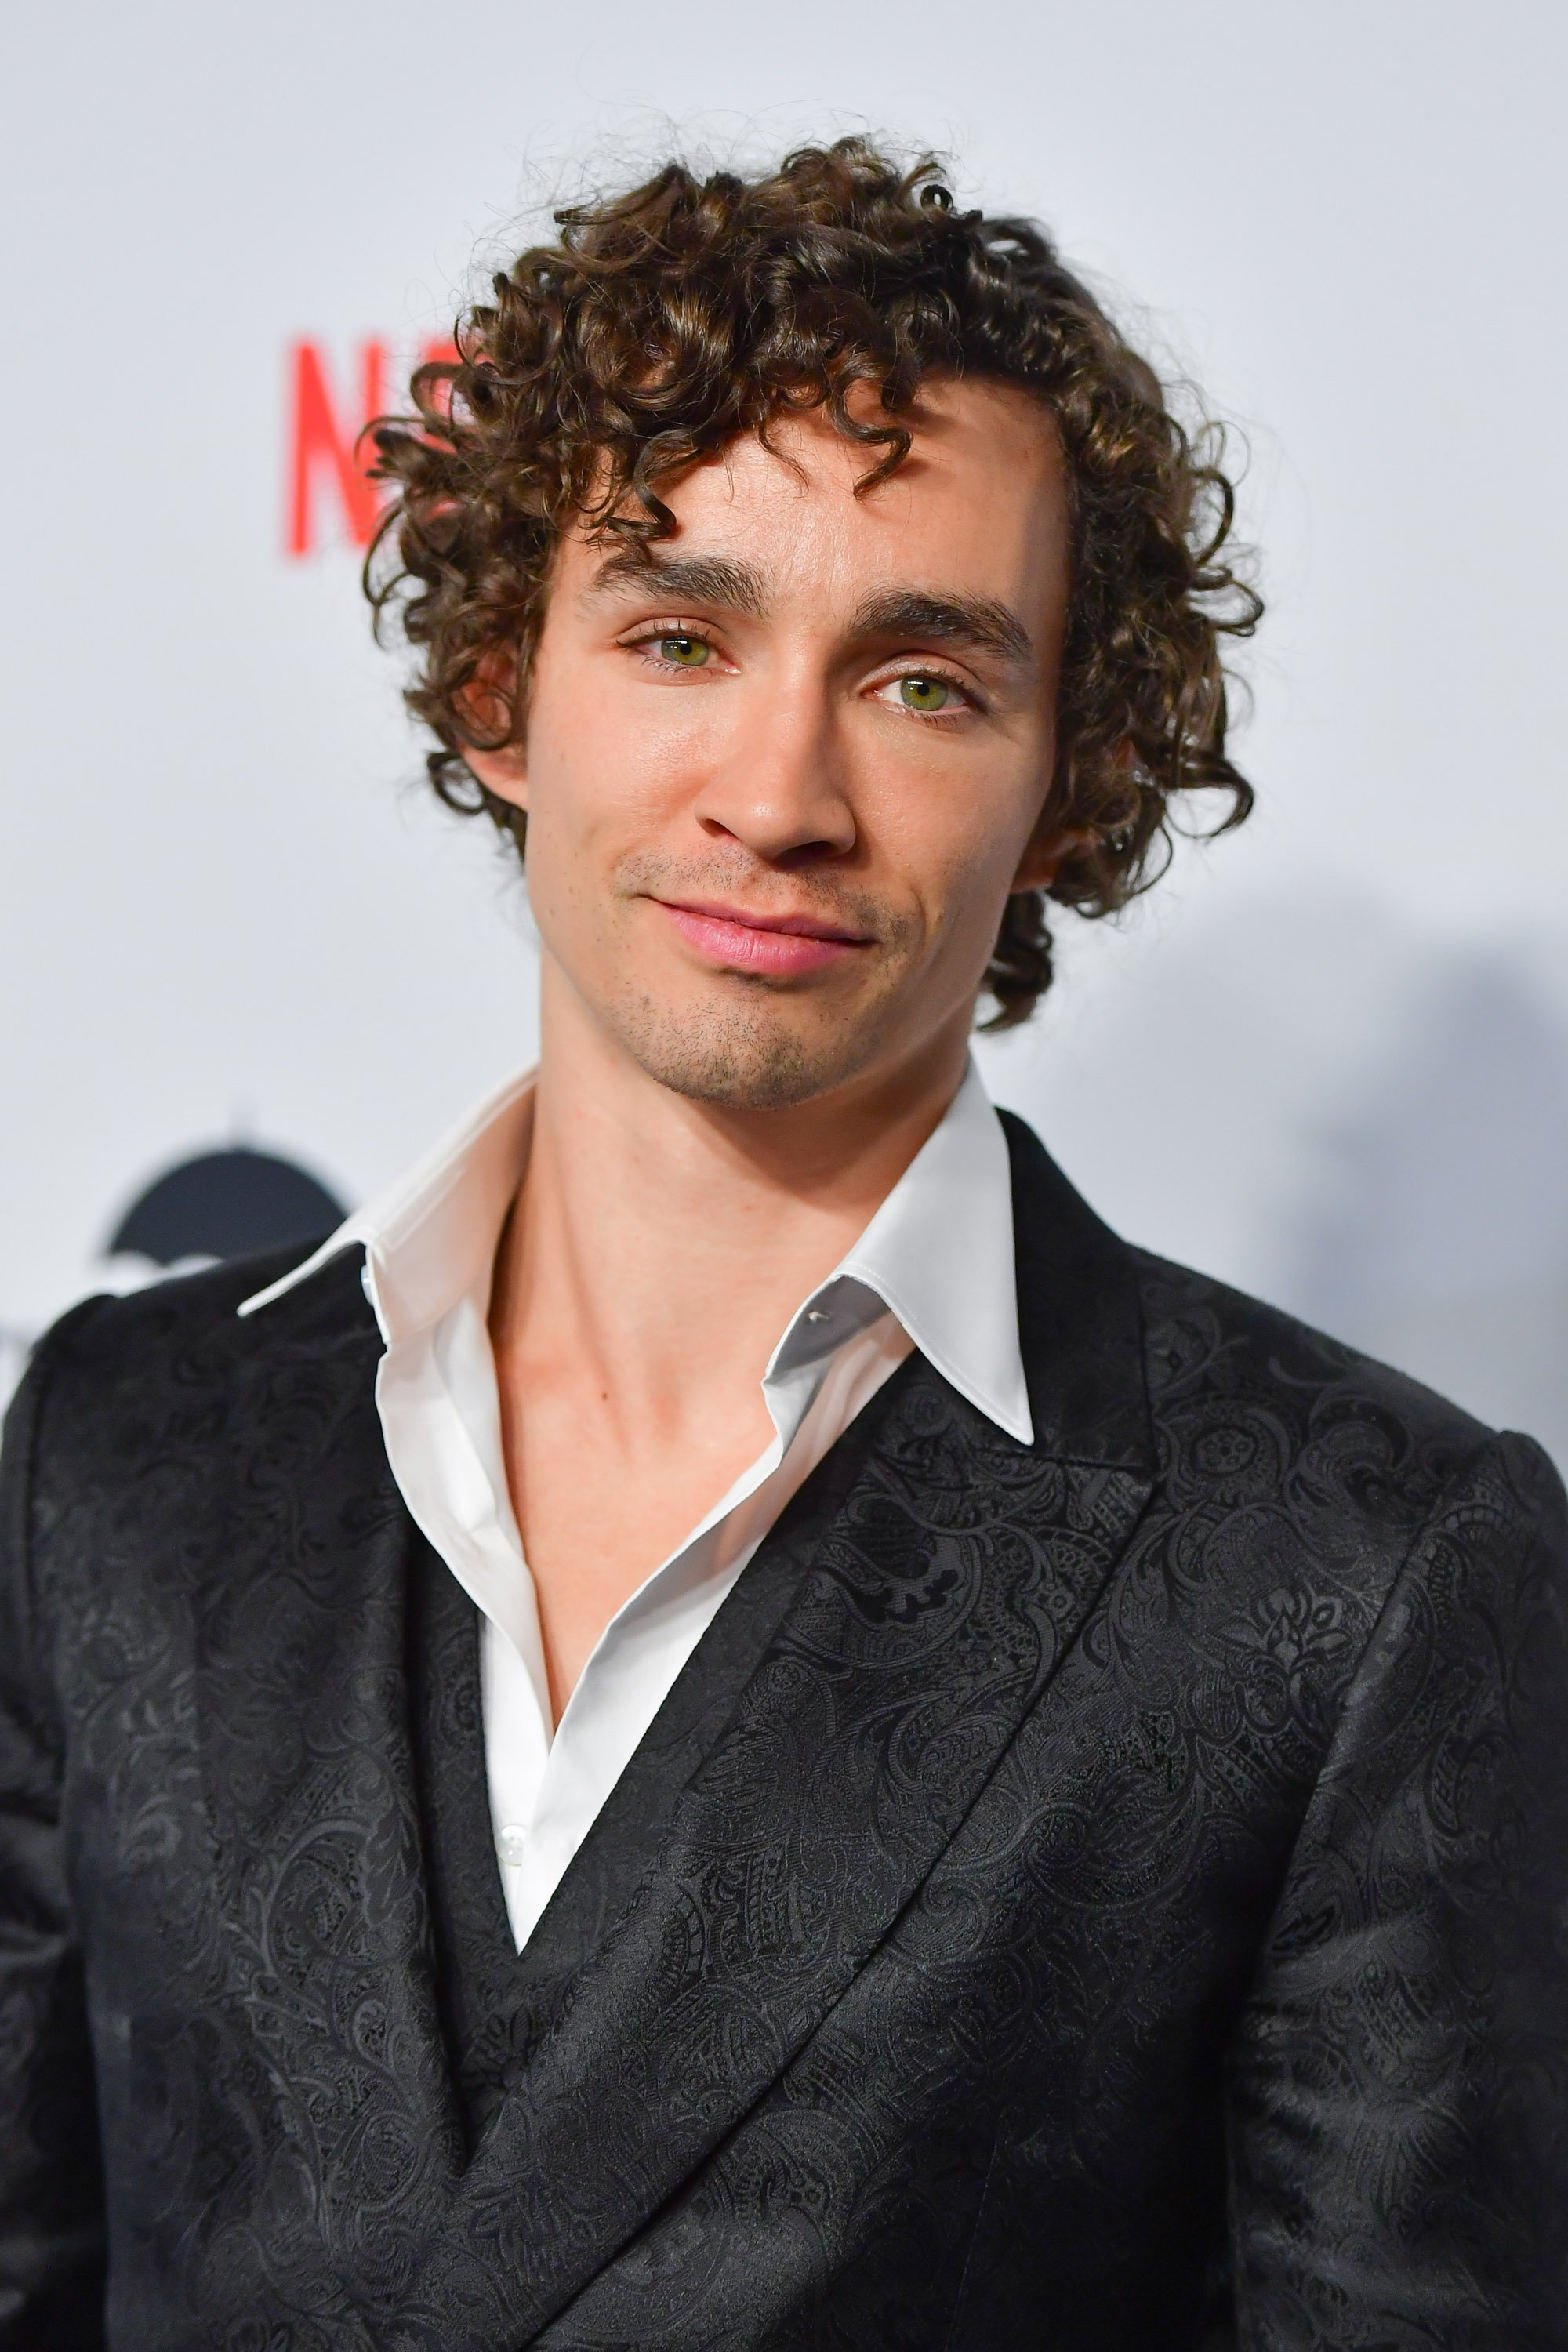 Robert Sheehan attends the premiere of Netflix's 'The Umbrella Academy' / Getty Images